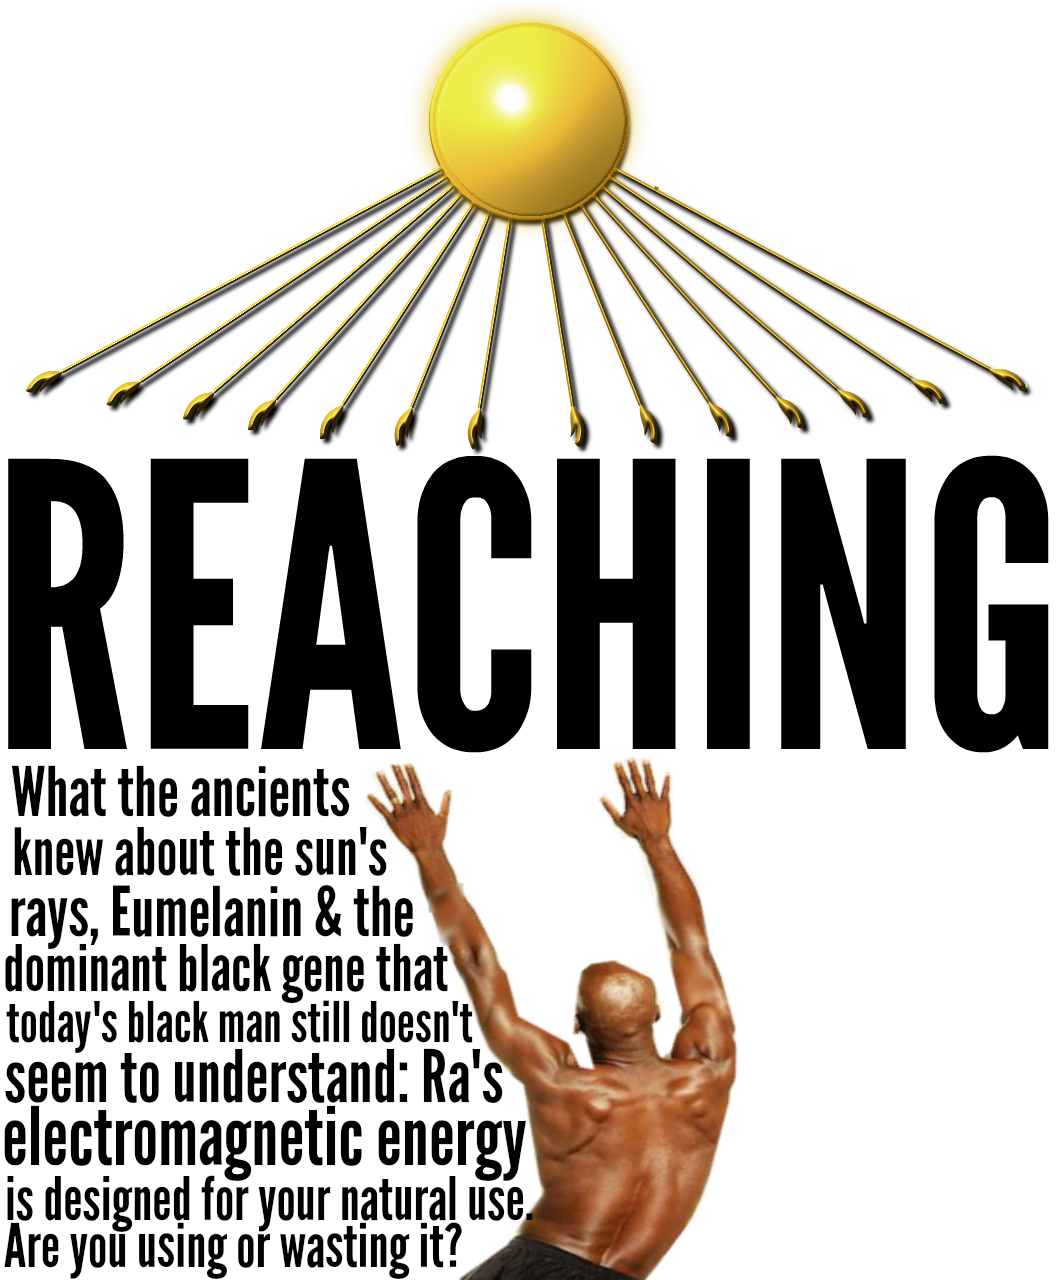 Aten ras hands at the end of each ray what are they passing on aten ras hands at the end of each ray what are they passing on the ankh the ancient symbol of power buycottarizona Images